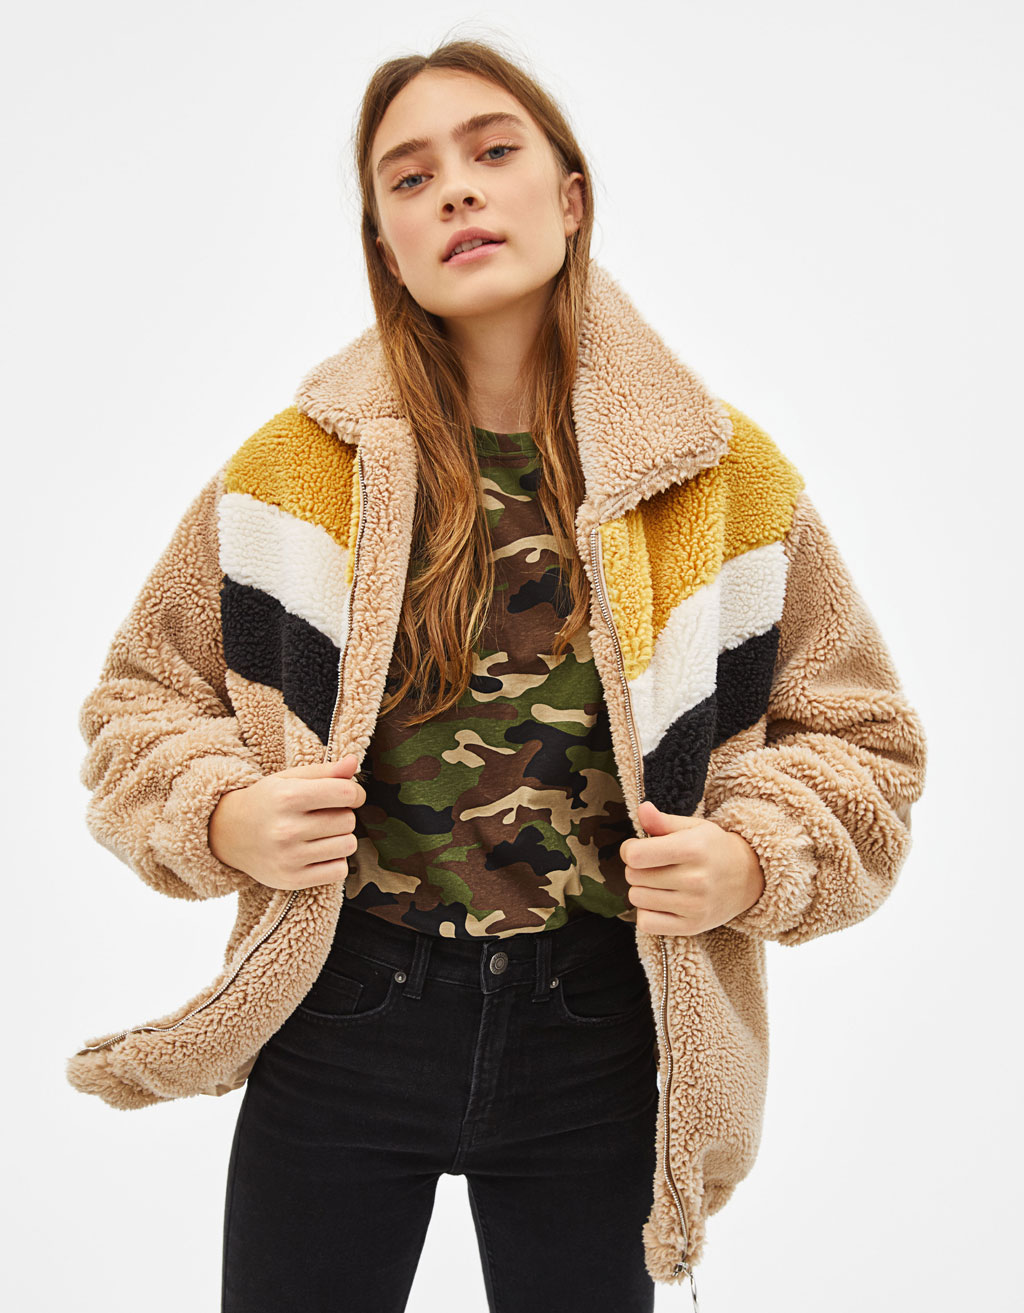 Vêtements  Promotion Jusqu'À  30 Percents   Femme   Bershka France by Bershka